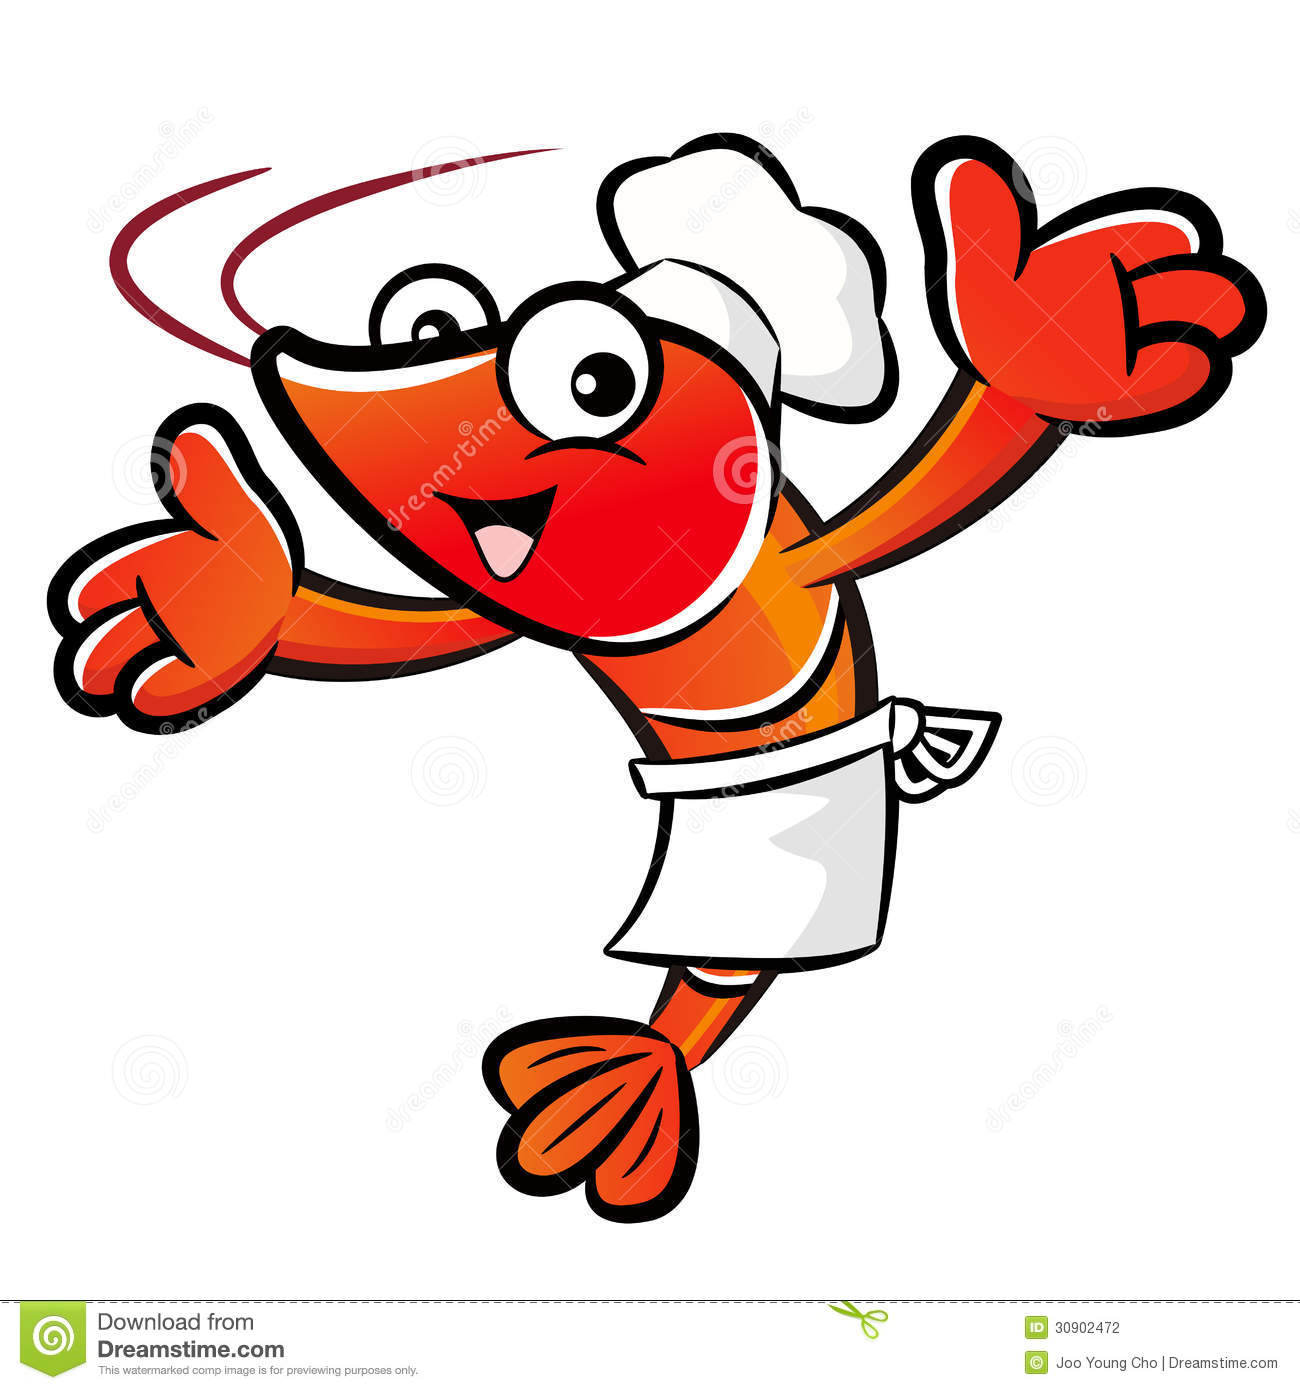 the shrimp chef mascot has been welcomed with both hands Cooked Shrimp Clip Art Shrimp Clip Art Black and White